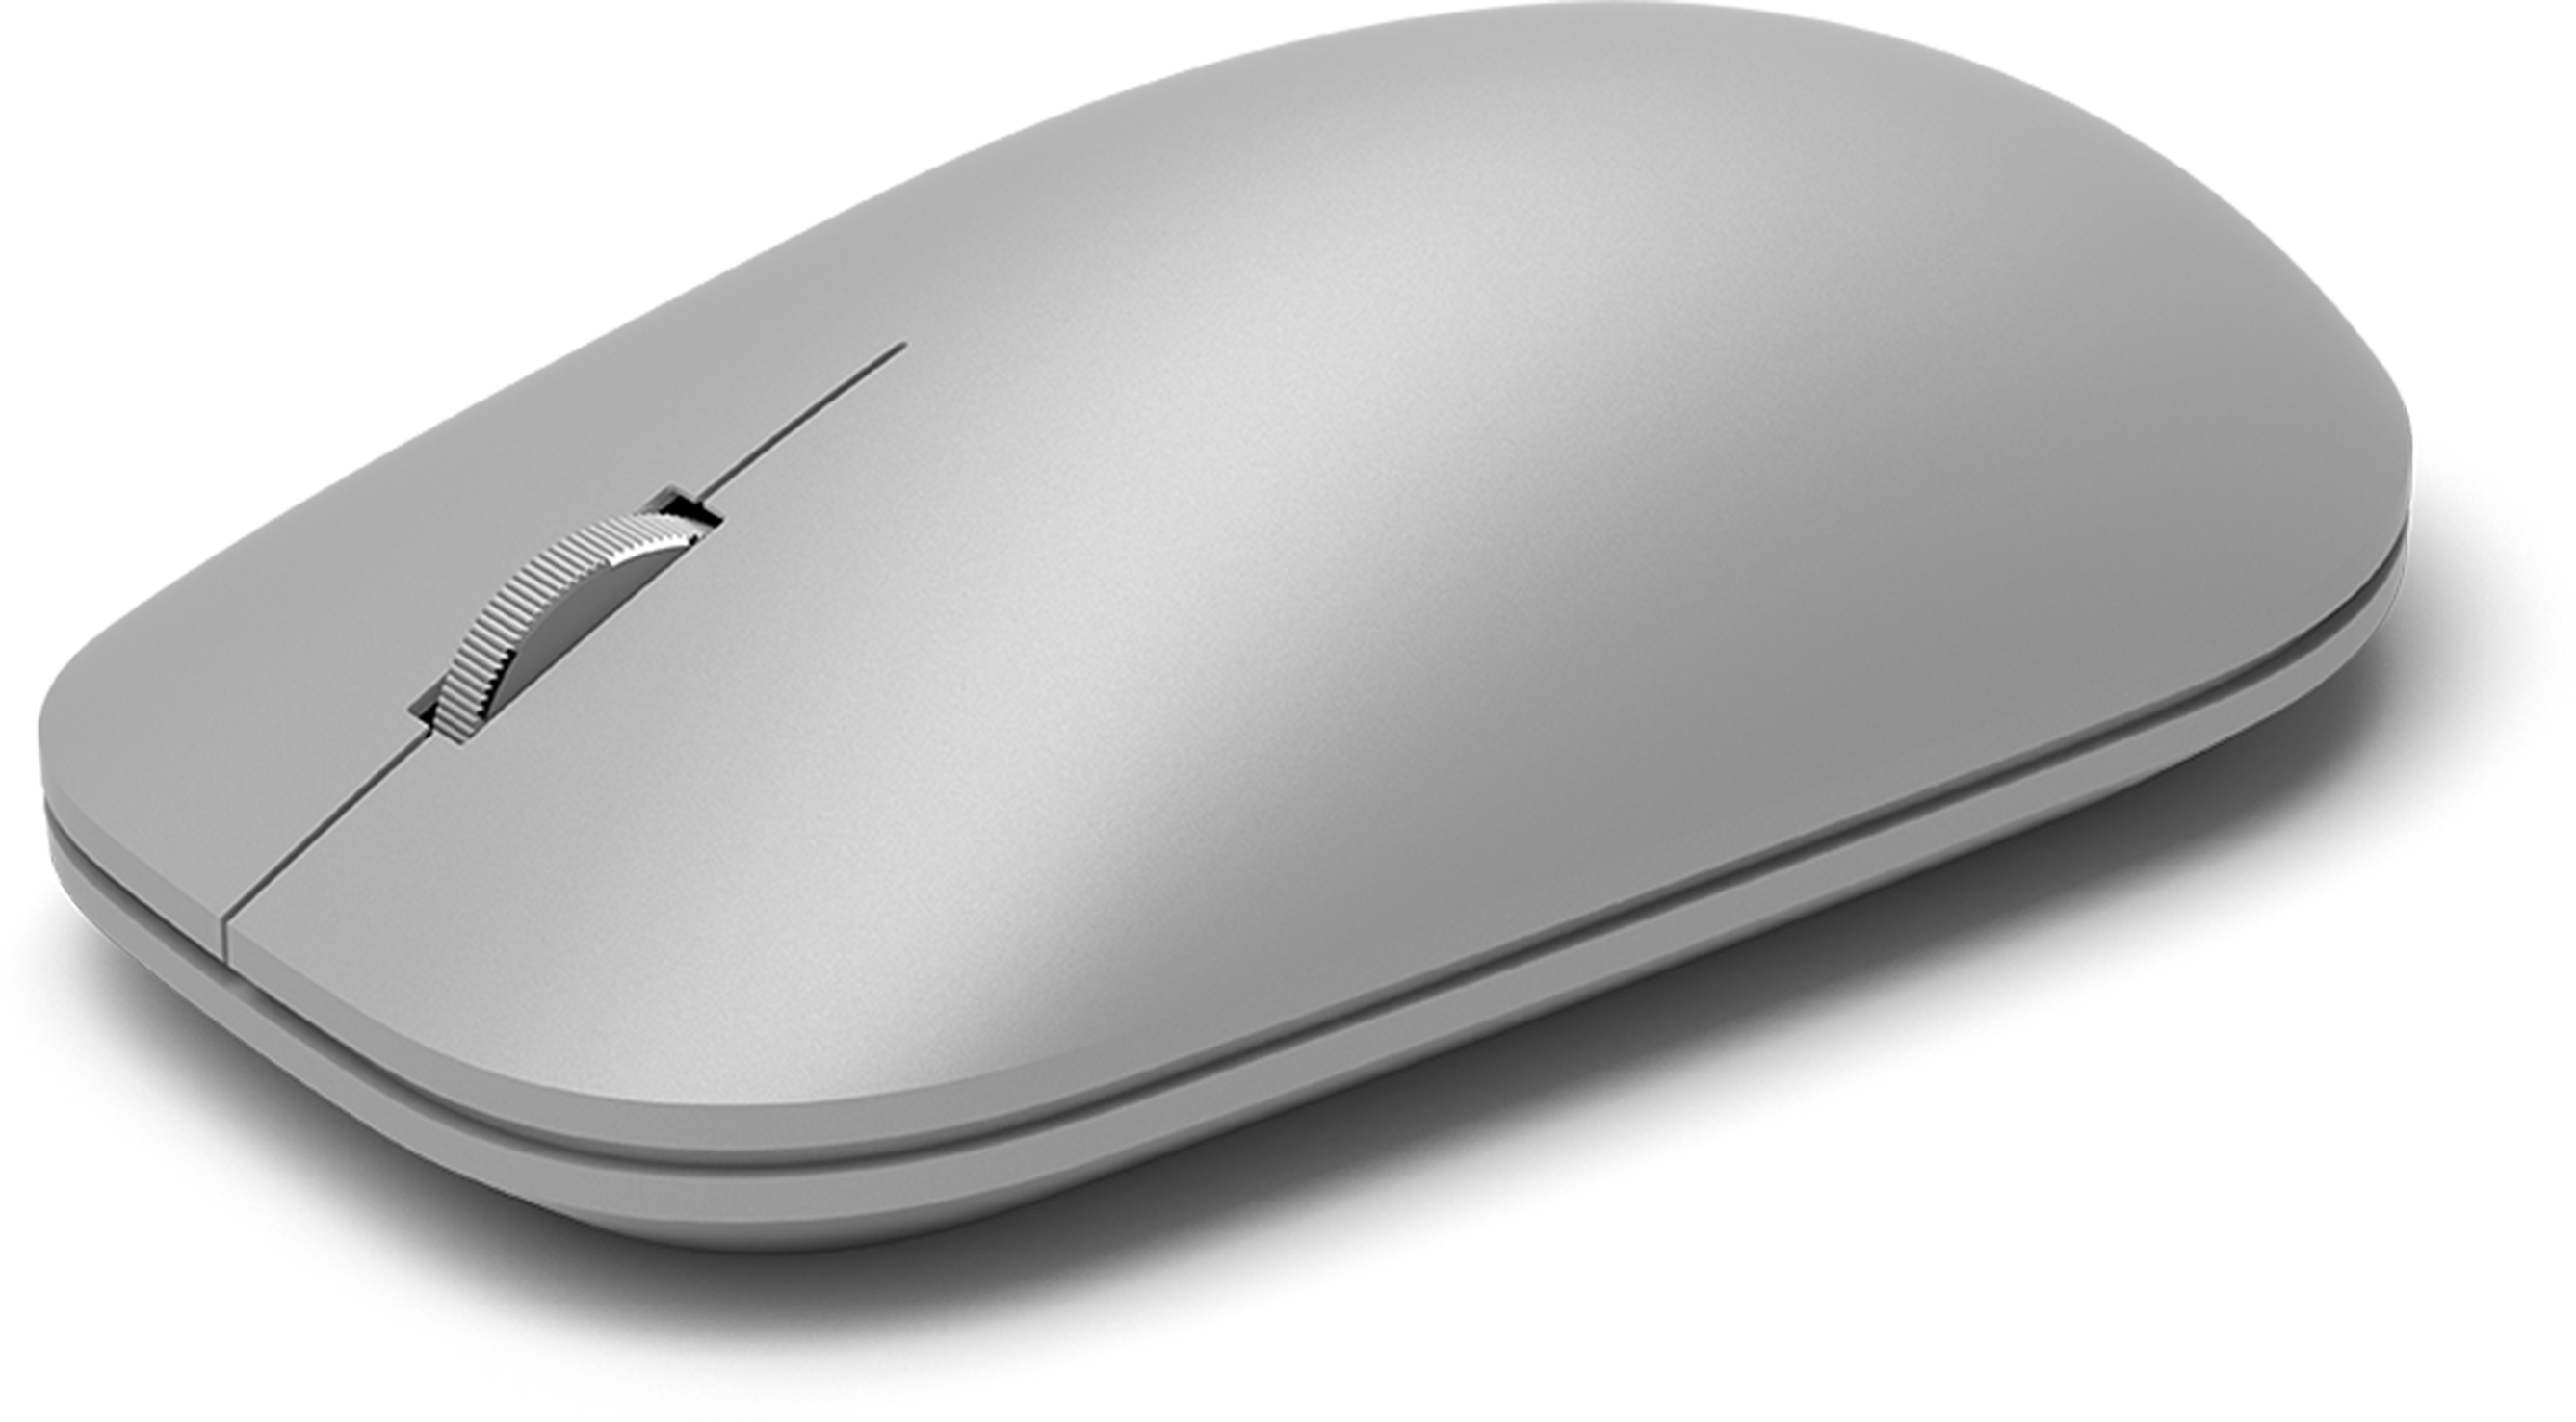 Surface Mouse Meticulously crafted, just like Surface Sleek, simple design Metal scroll wheel Bluetooth 4.0